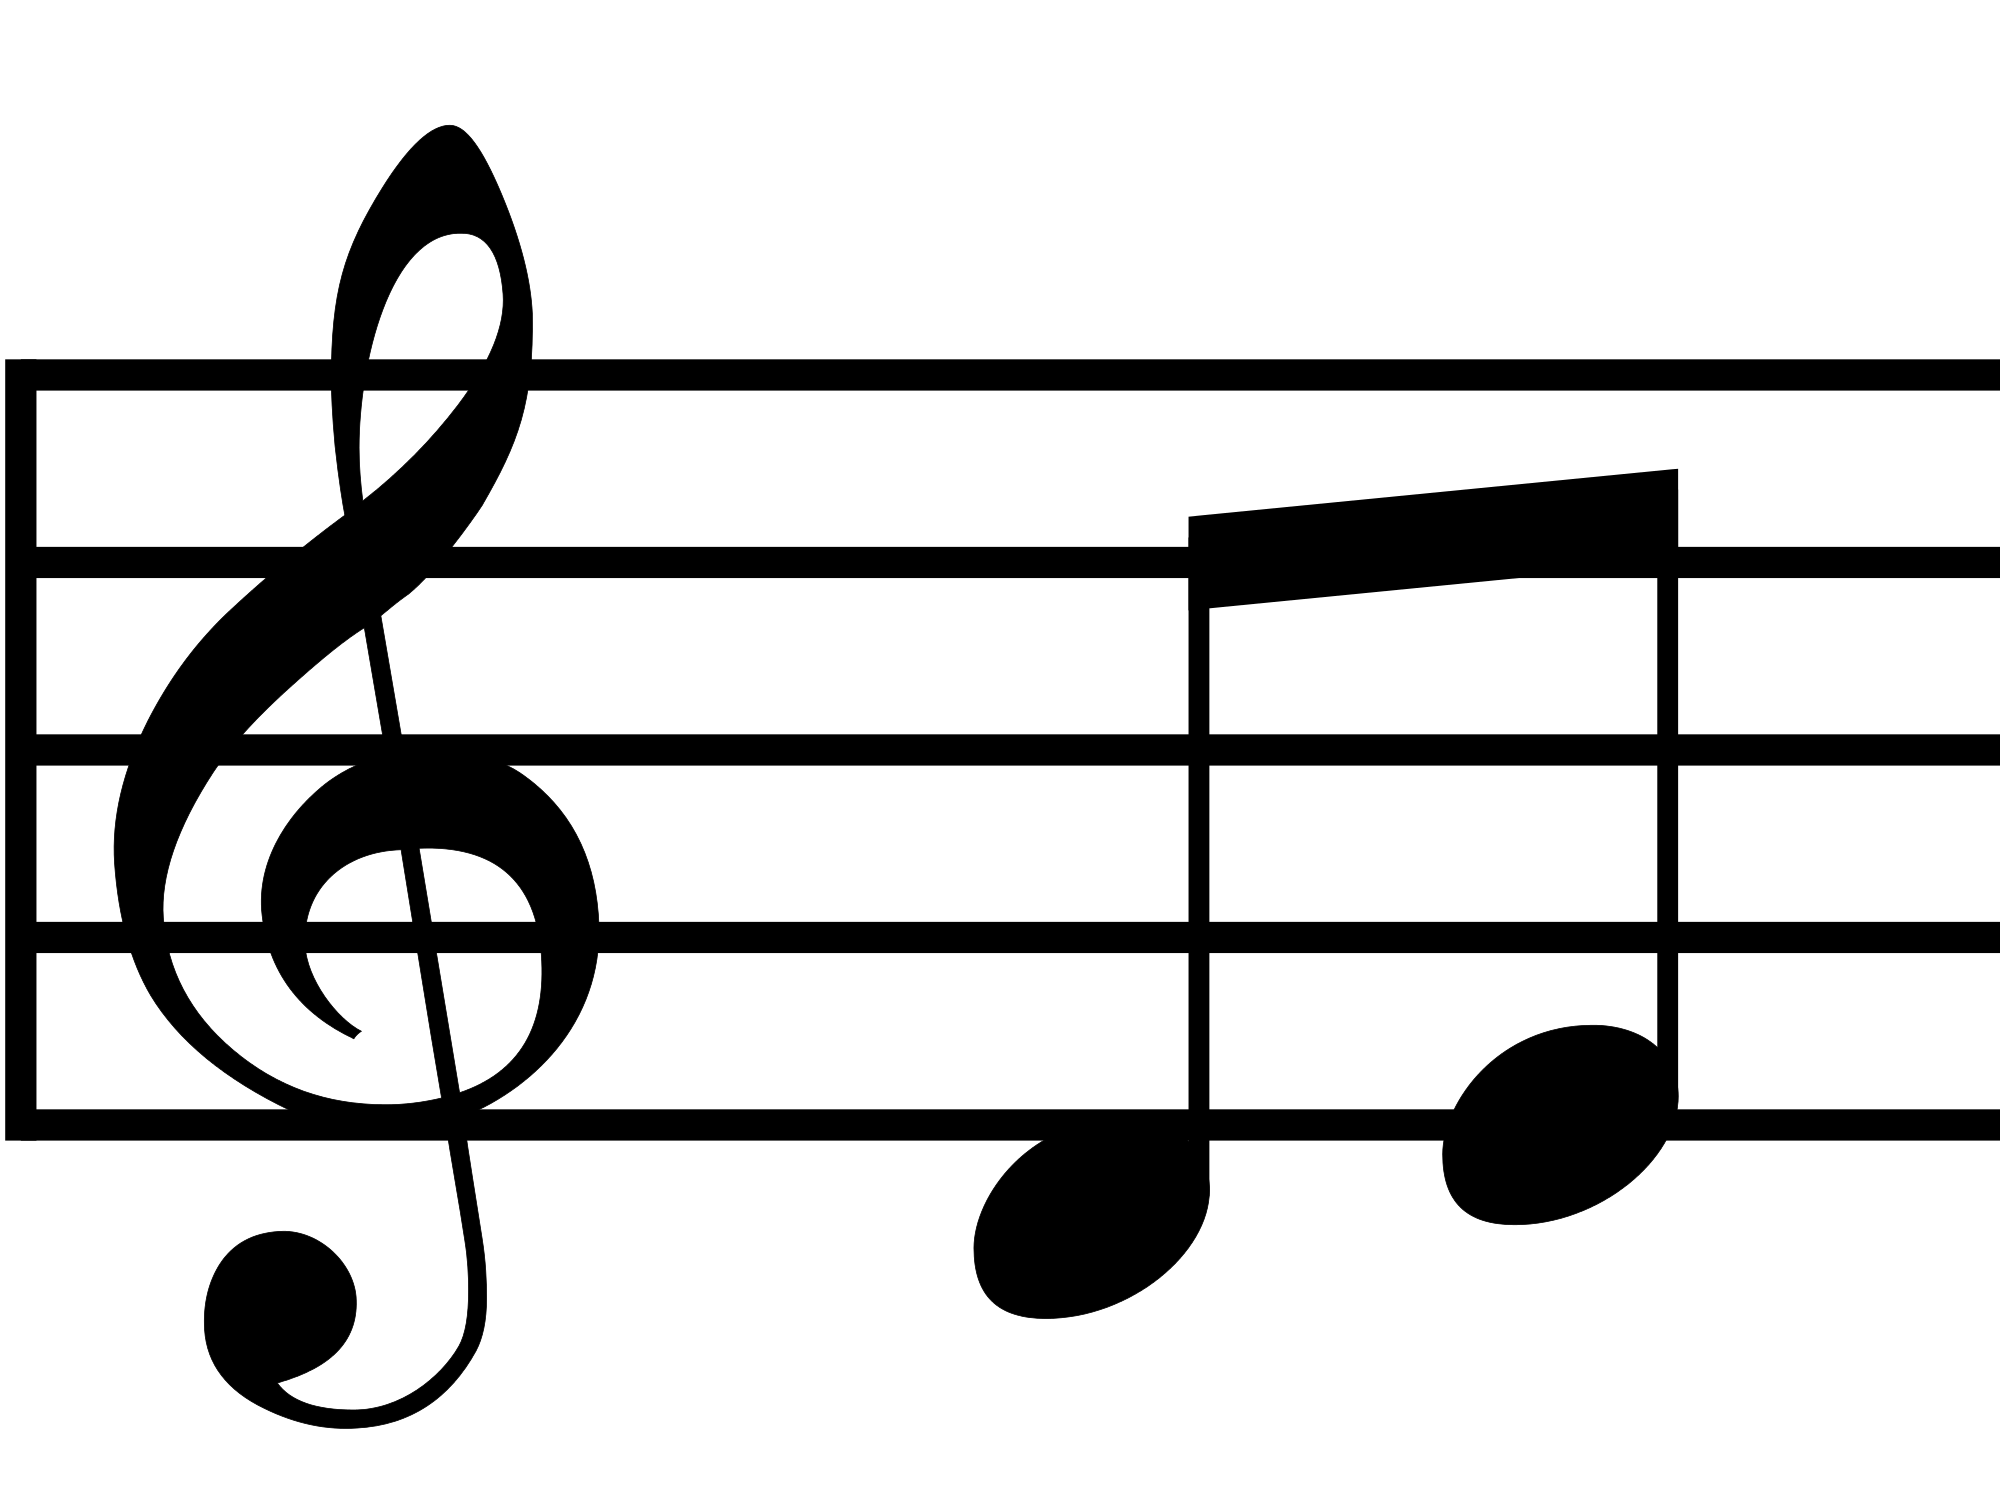 Png file format of music notes no background.